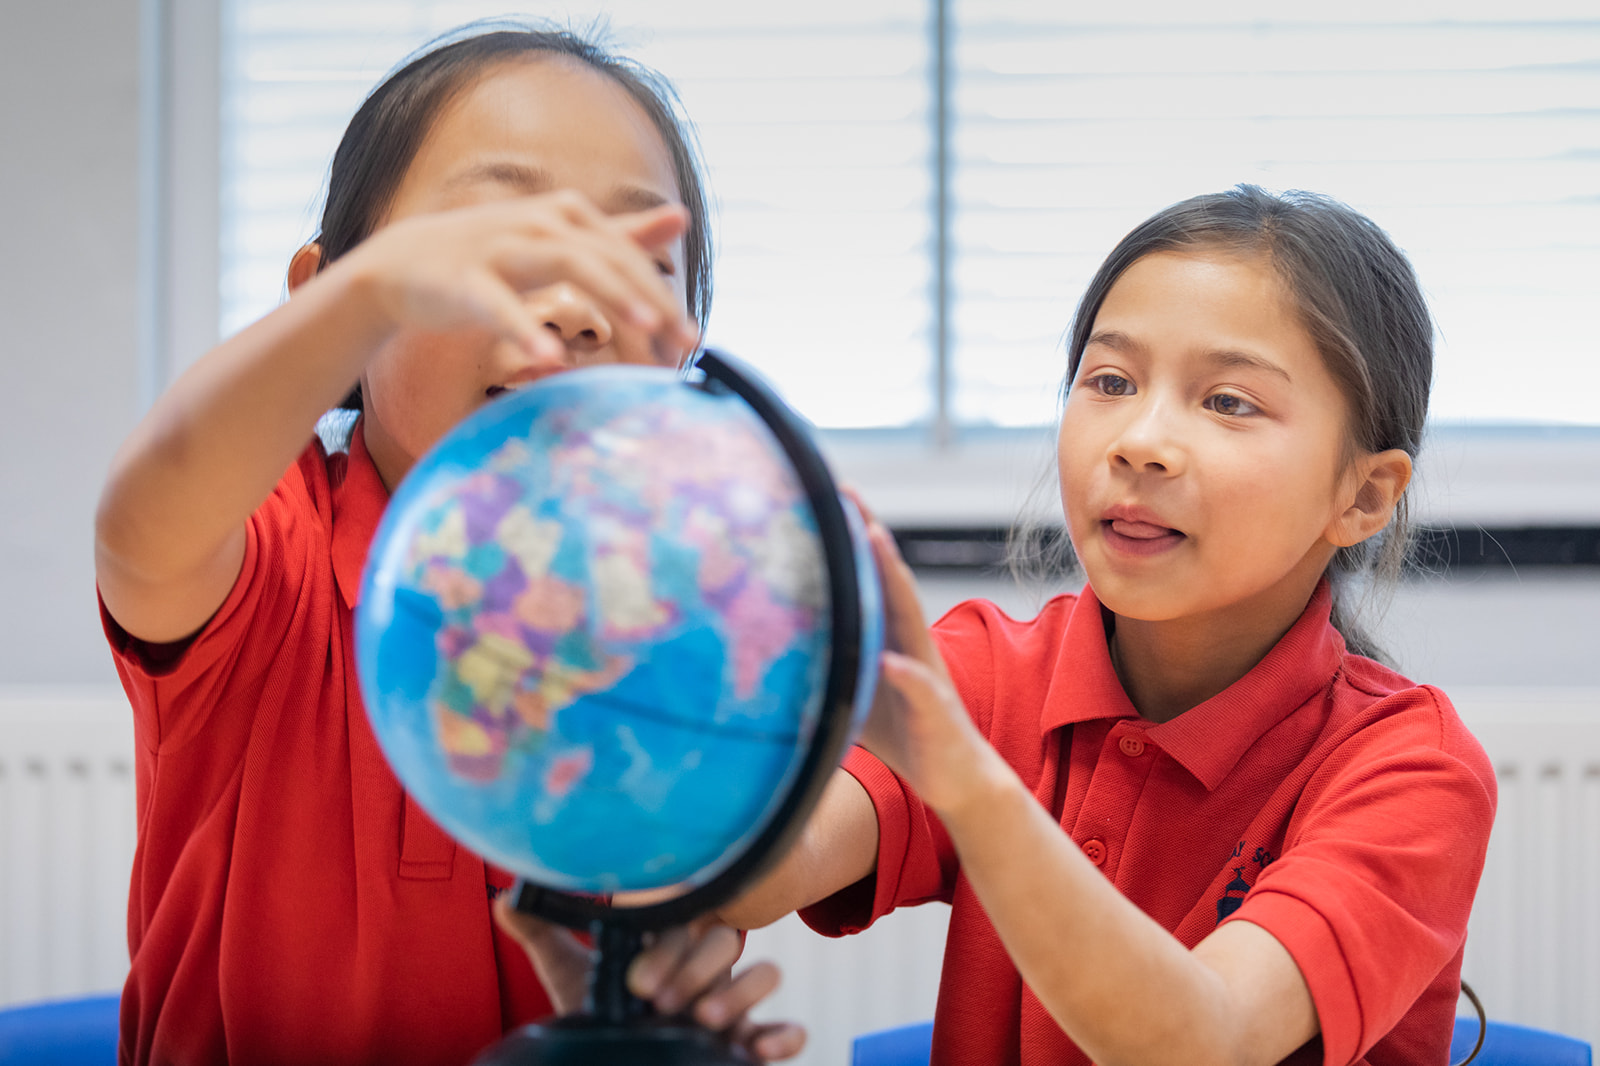 Faraday pupils with globe